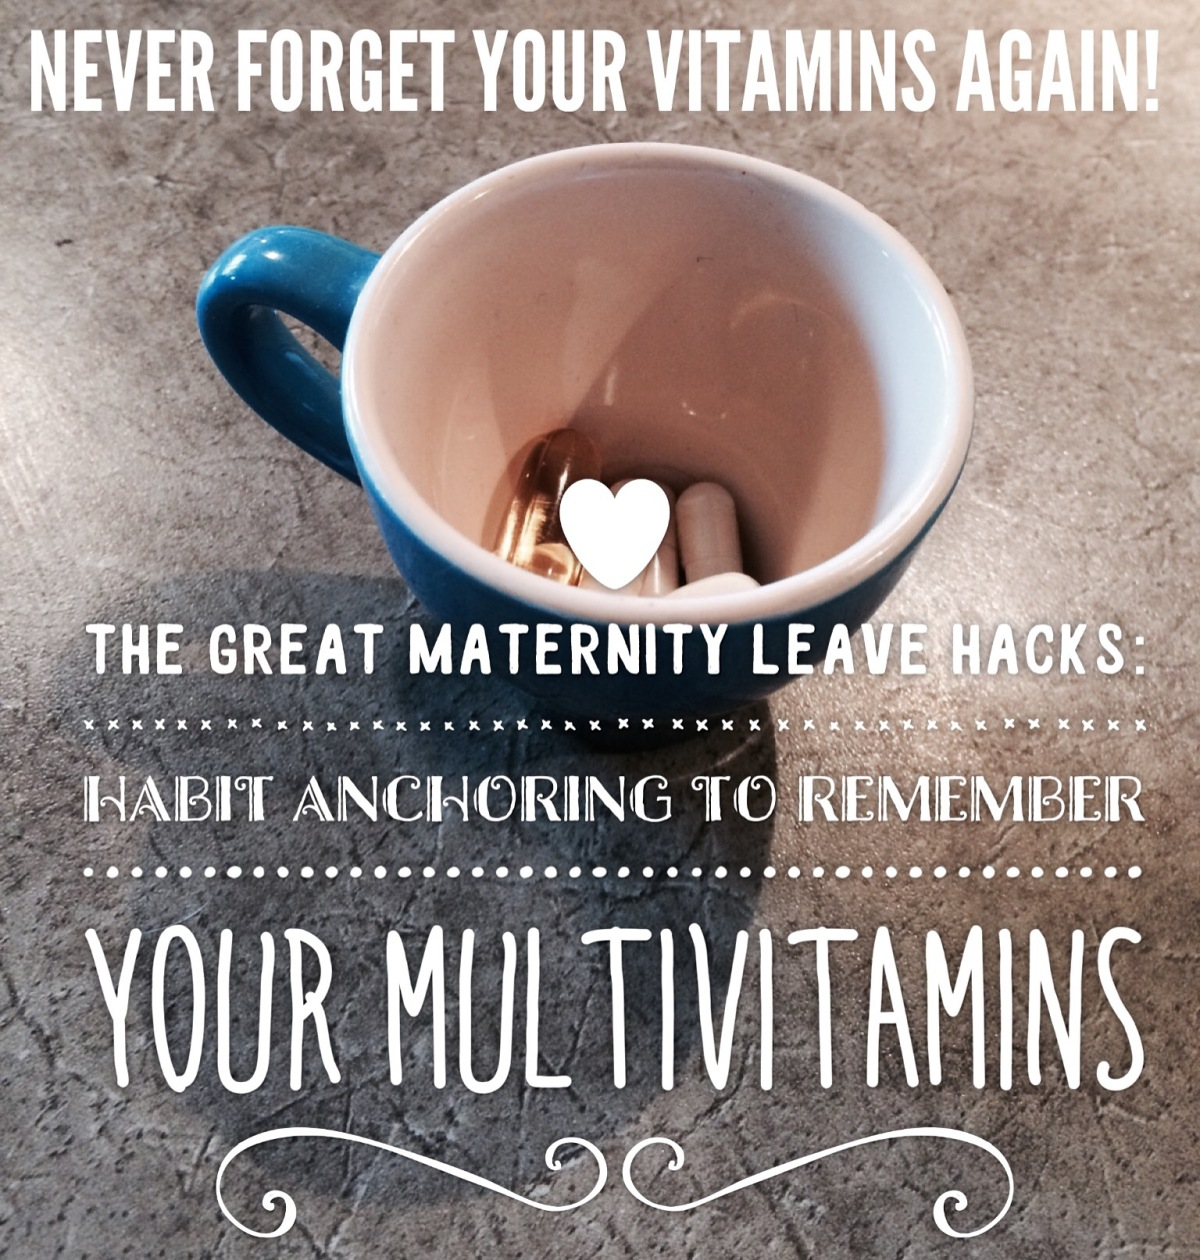 The Great Maternity Leave Projects:  Never Forget to Take Vitamins – Using Charles Duhigg's Book The Power of Habit